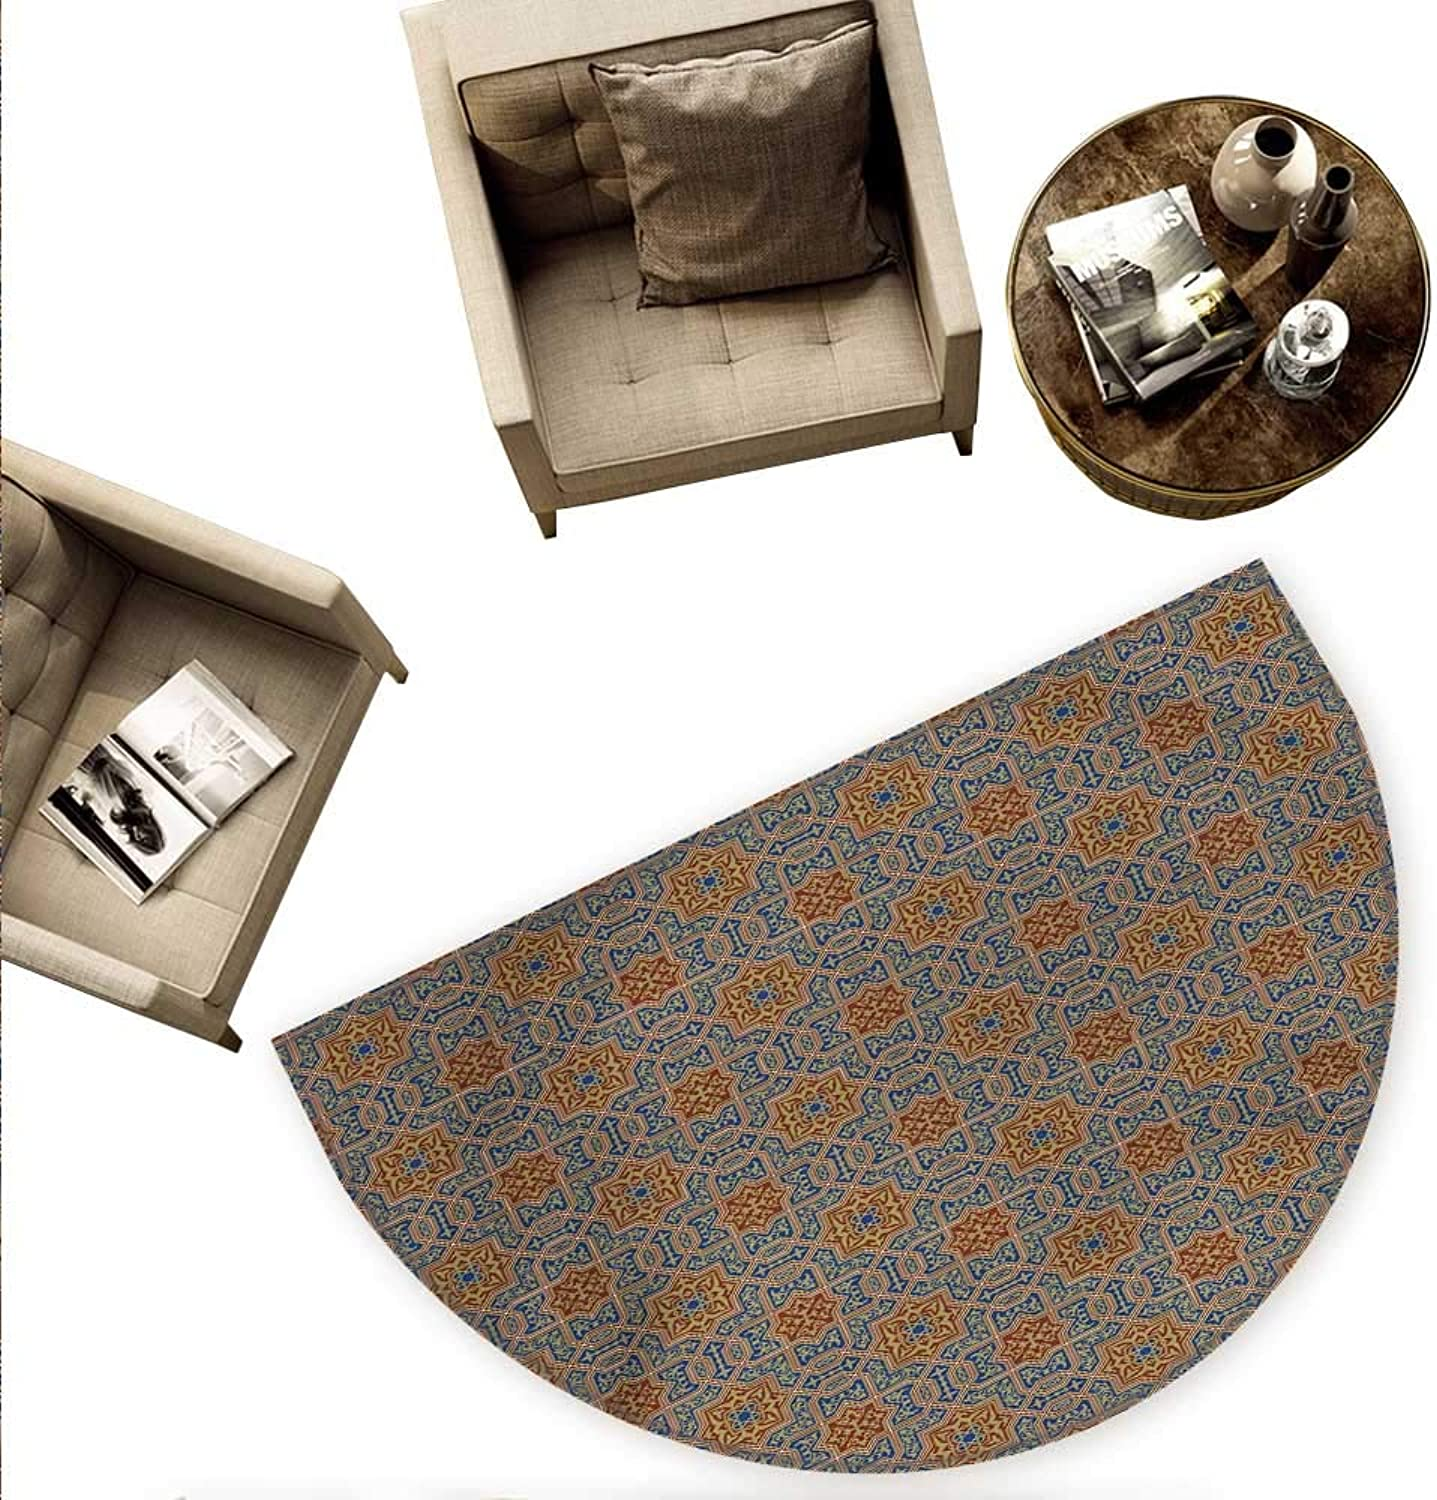 Mgoldccan Semicircular Cushion Traditional Arabic Design Tile with Geometric Floral Motifs Curly Details Entry Door Mat H 70.8  xD 106.3  bluee Sepia Redwood